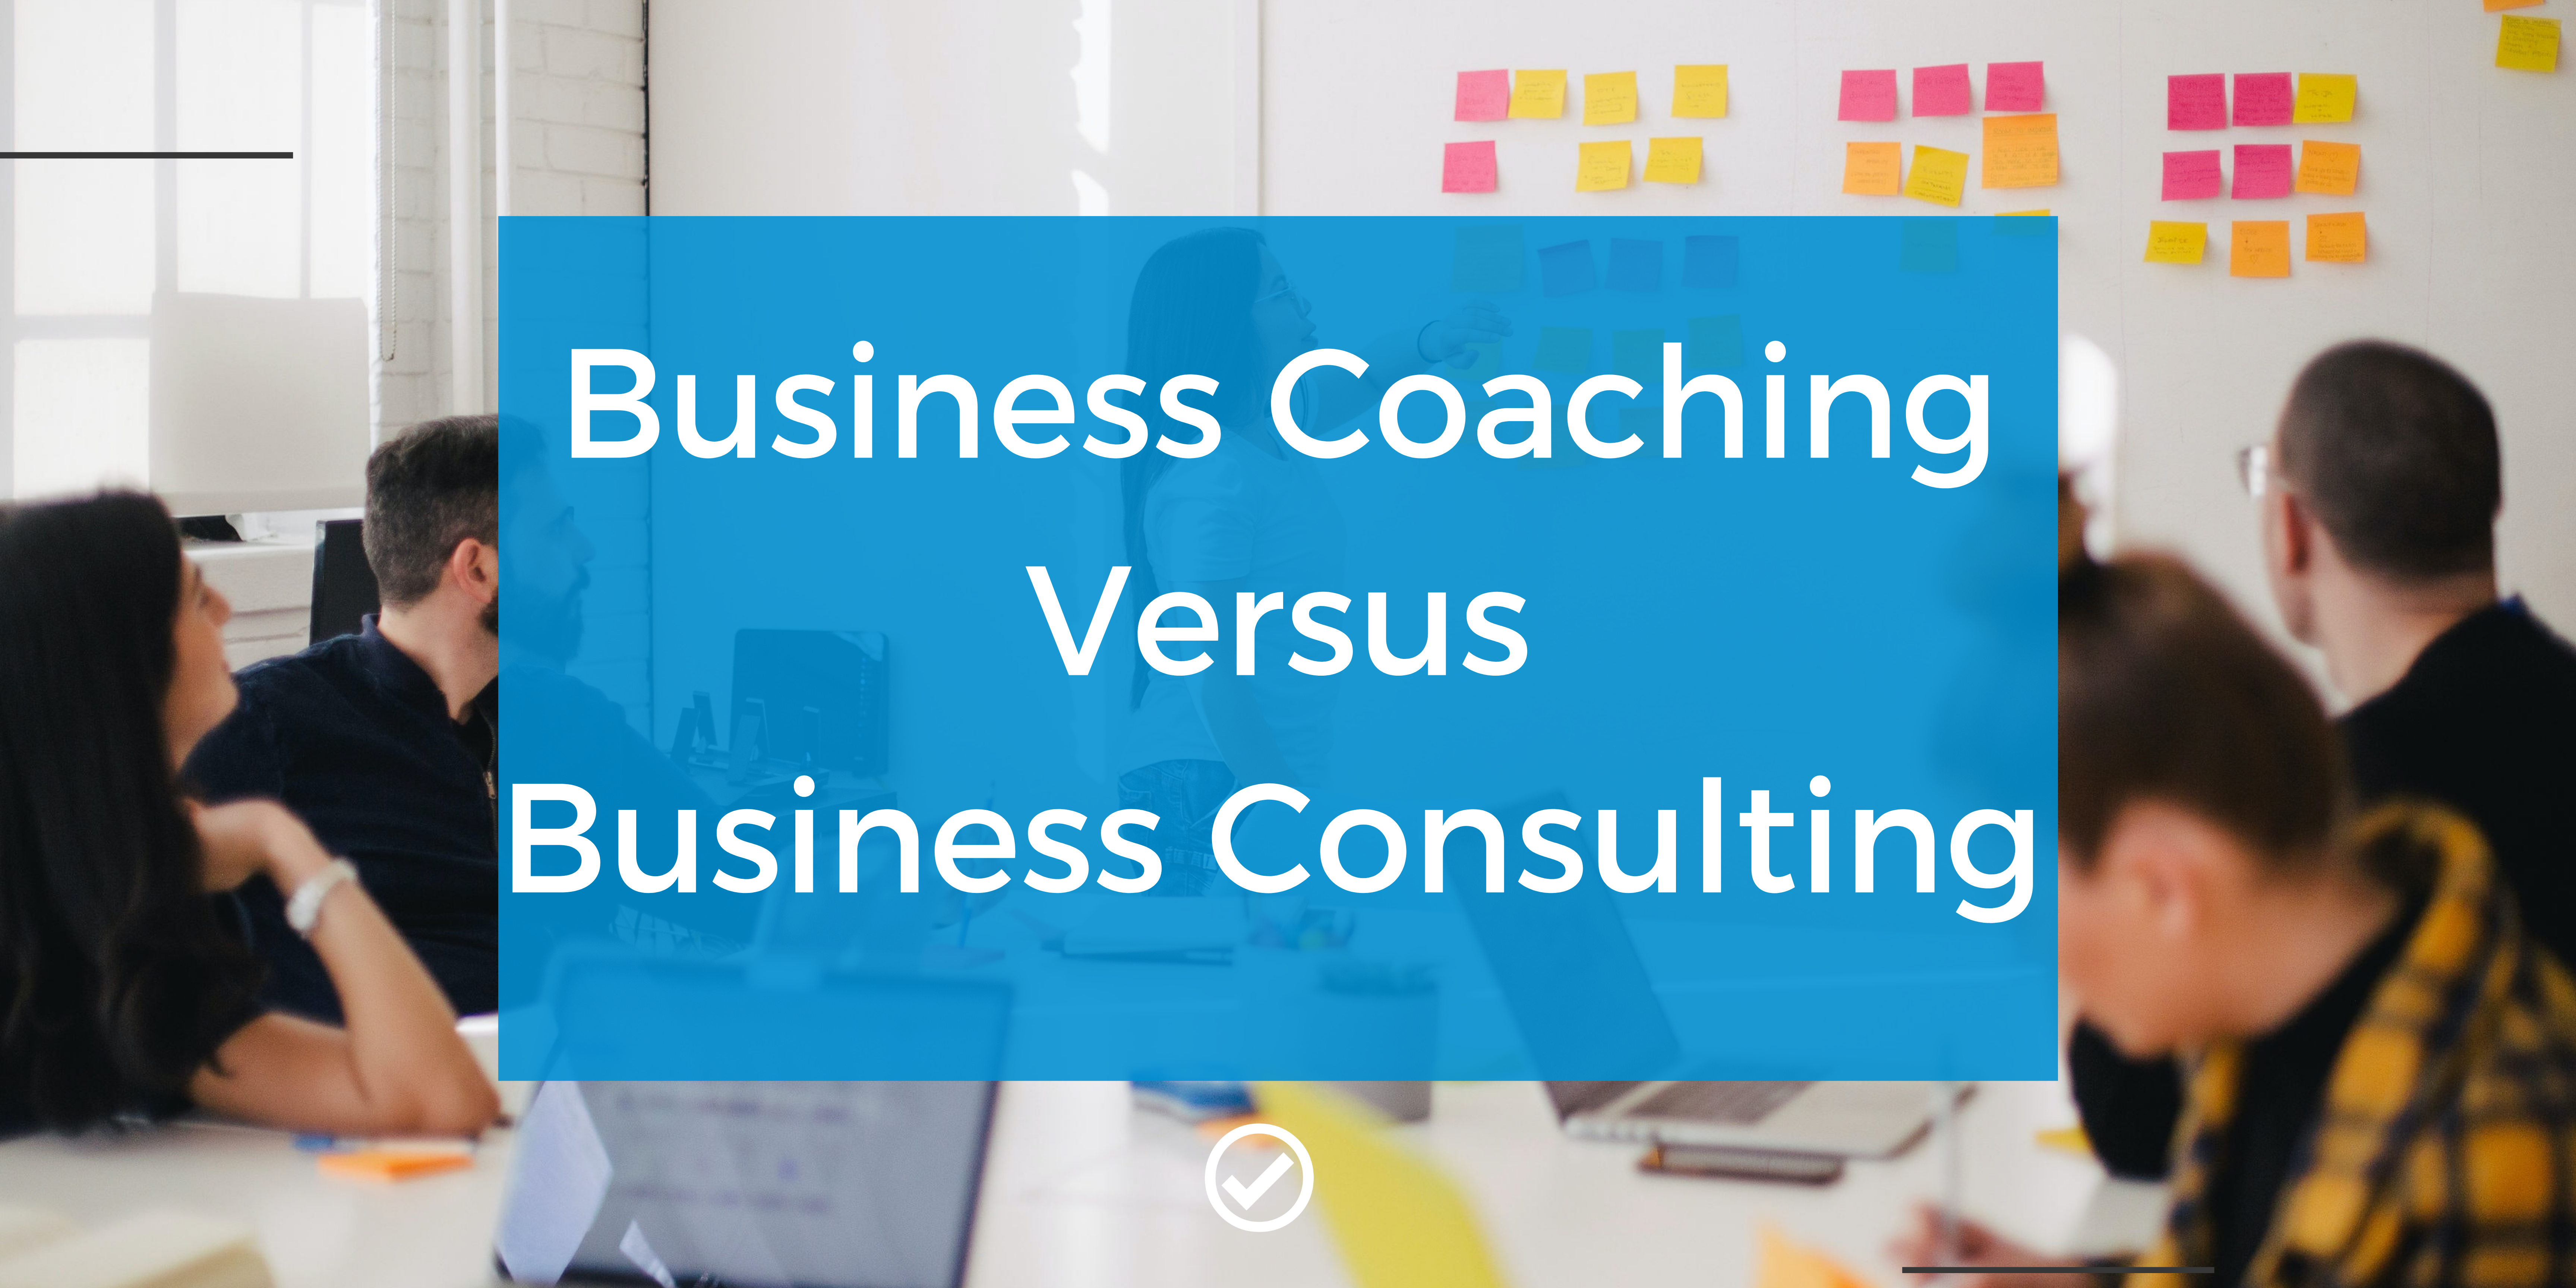 Business Coaching Versus Business Consulting?